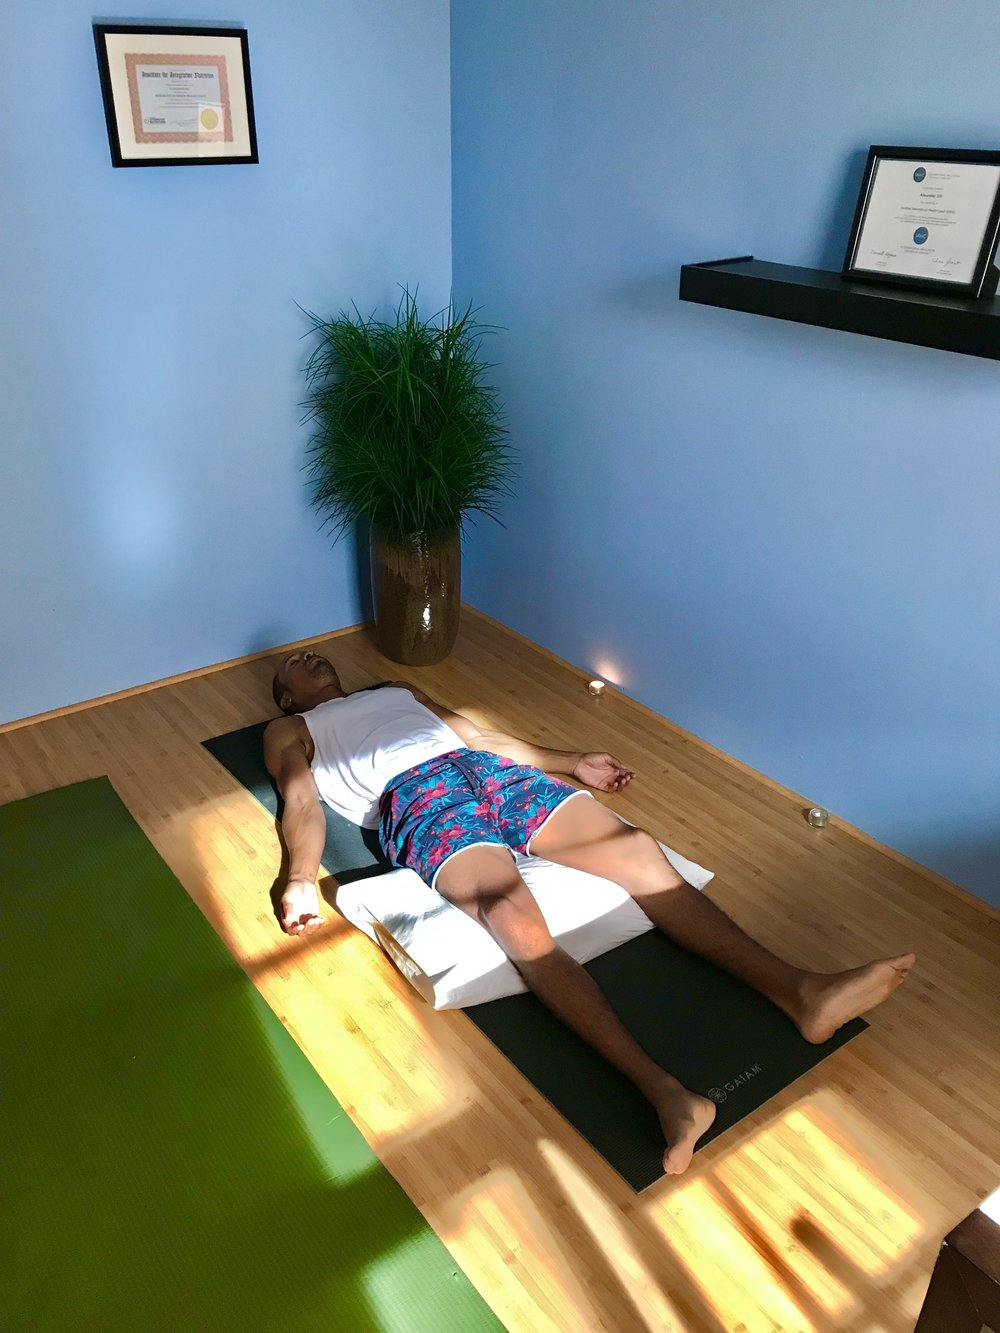 alex_shavasana_downsized.jpg